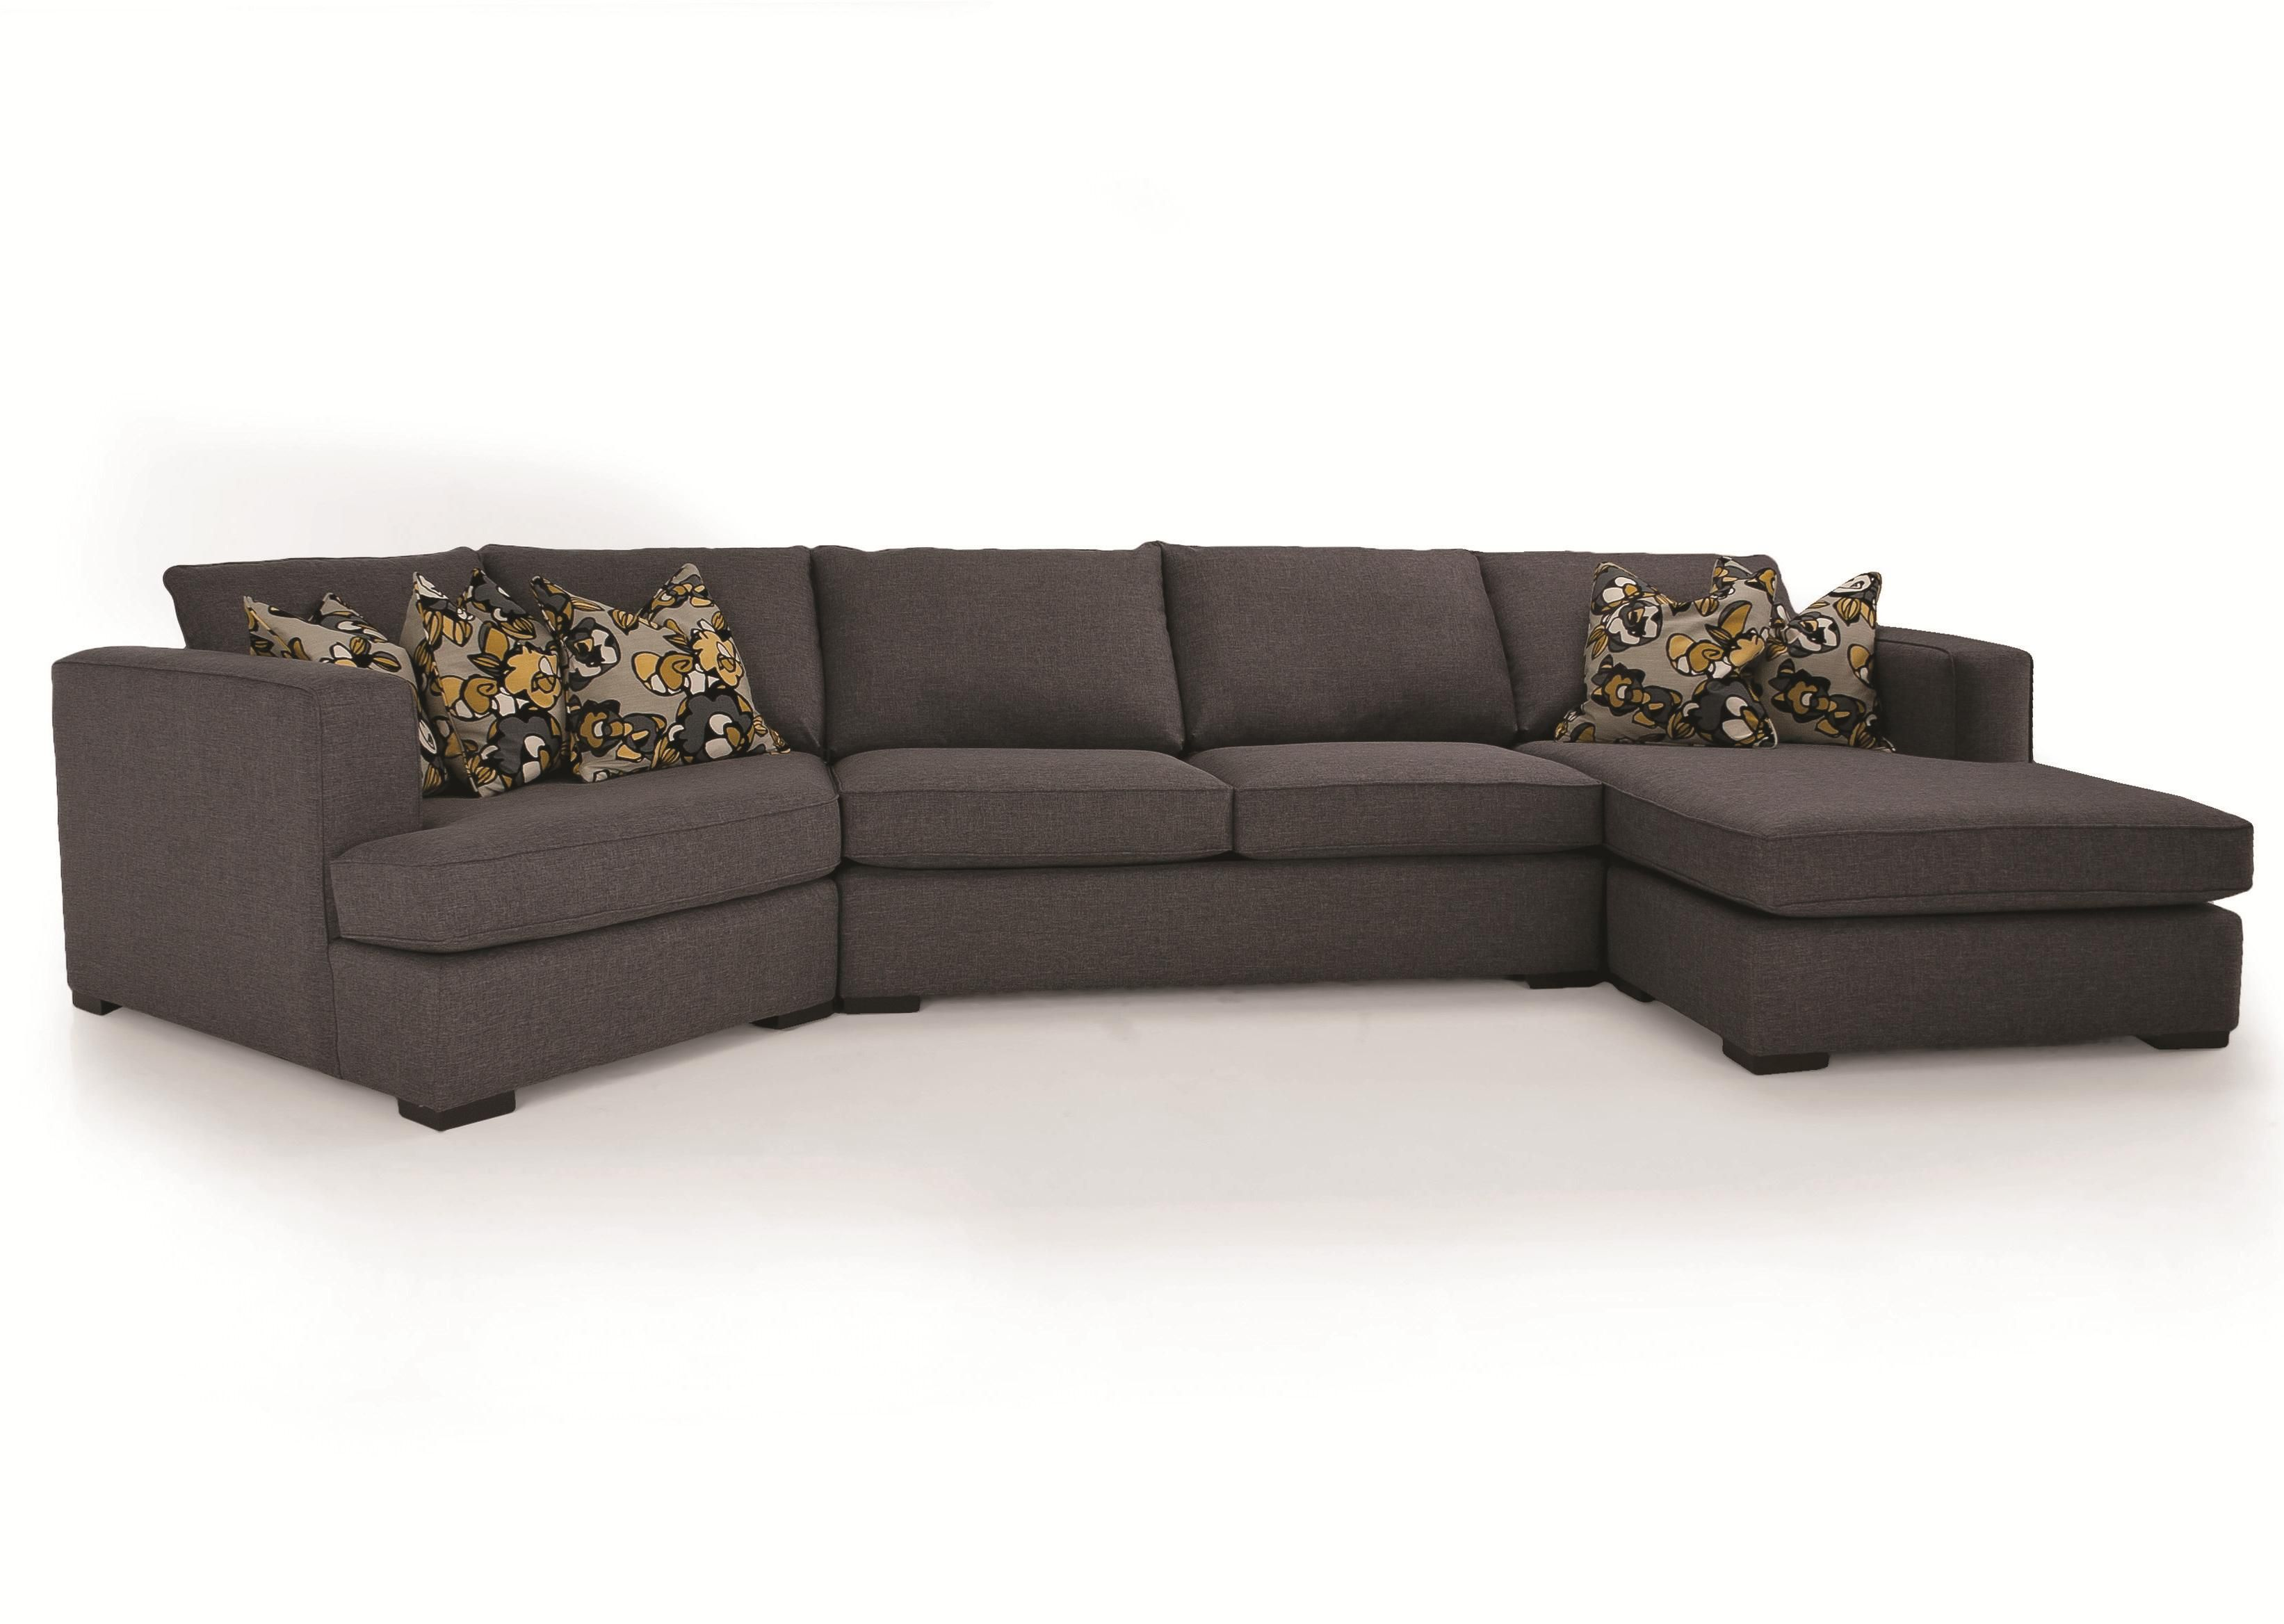 Decor-Rest 2900 3-Piece Contemporary Sectional with LHF ...